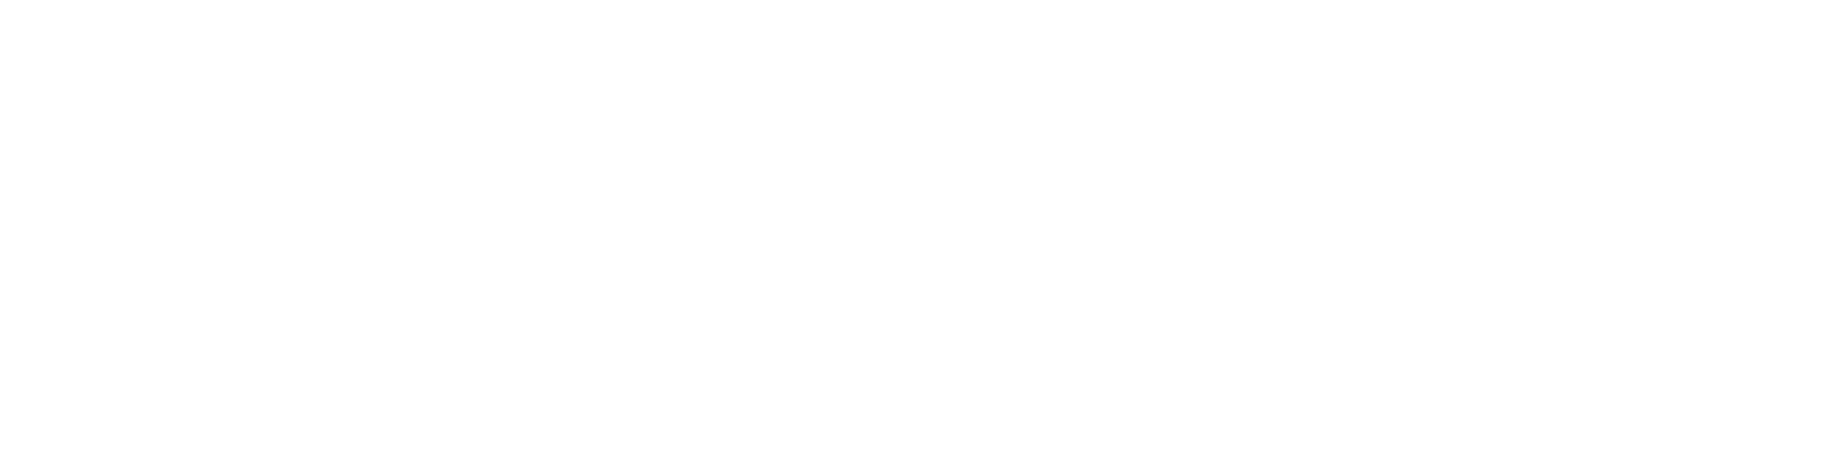 """high-dose of glamour that Sui's audience has probably not seen from her since Linda was on the catwalk"" - VOGUE"